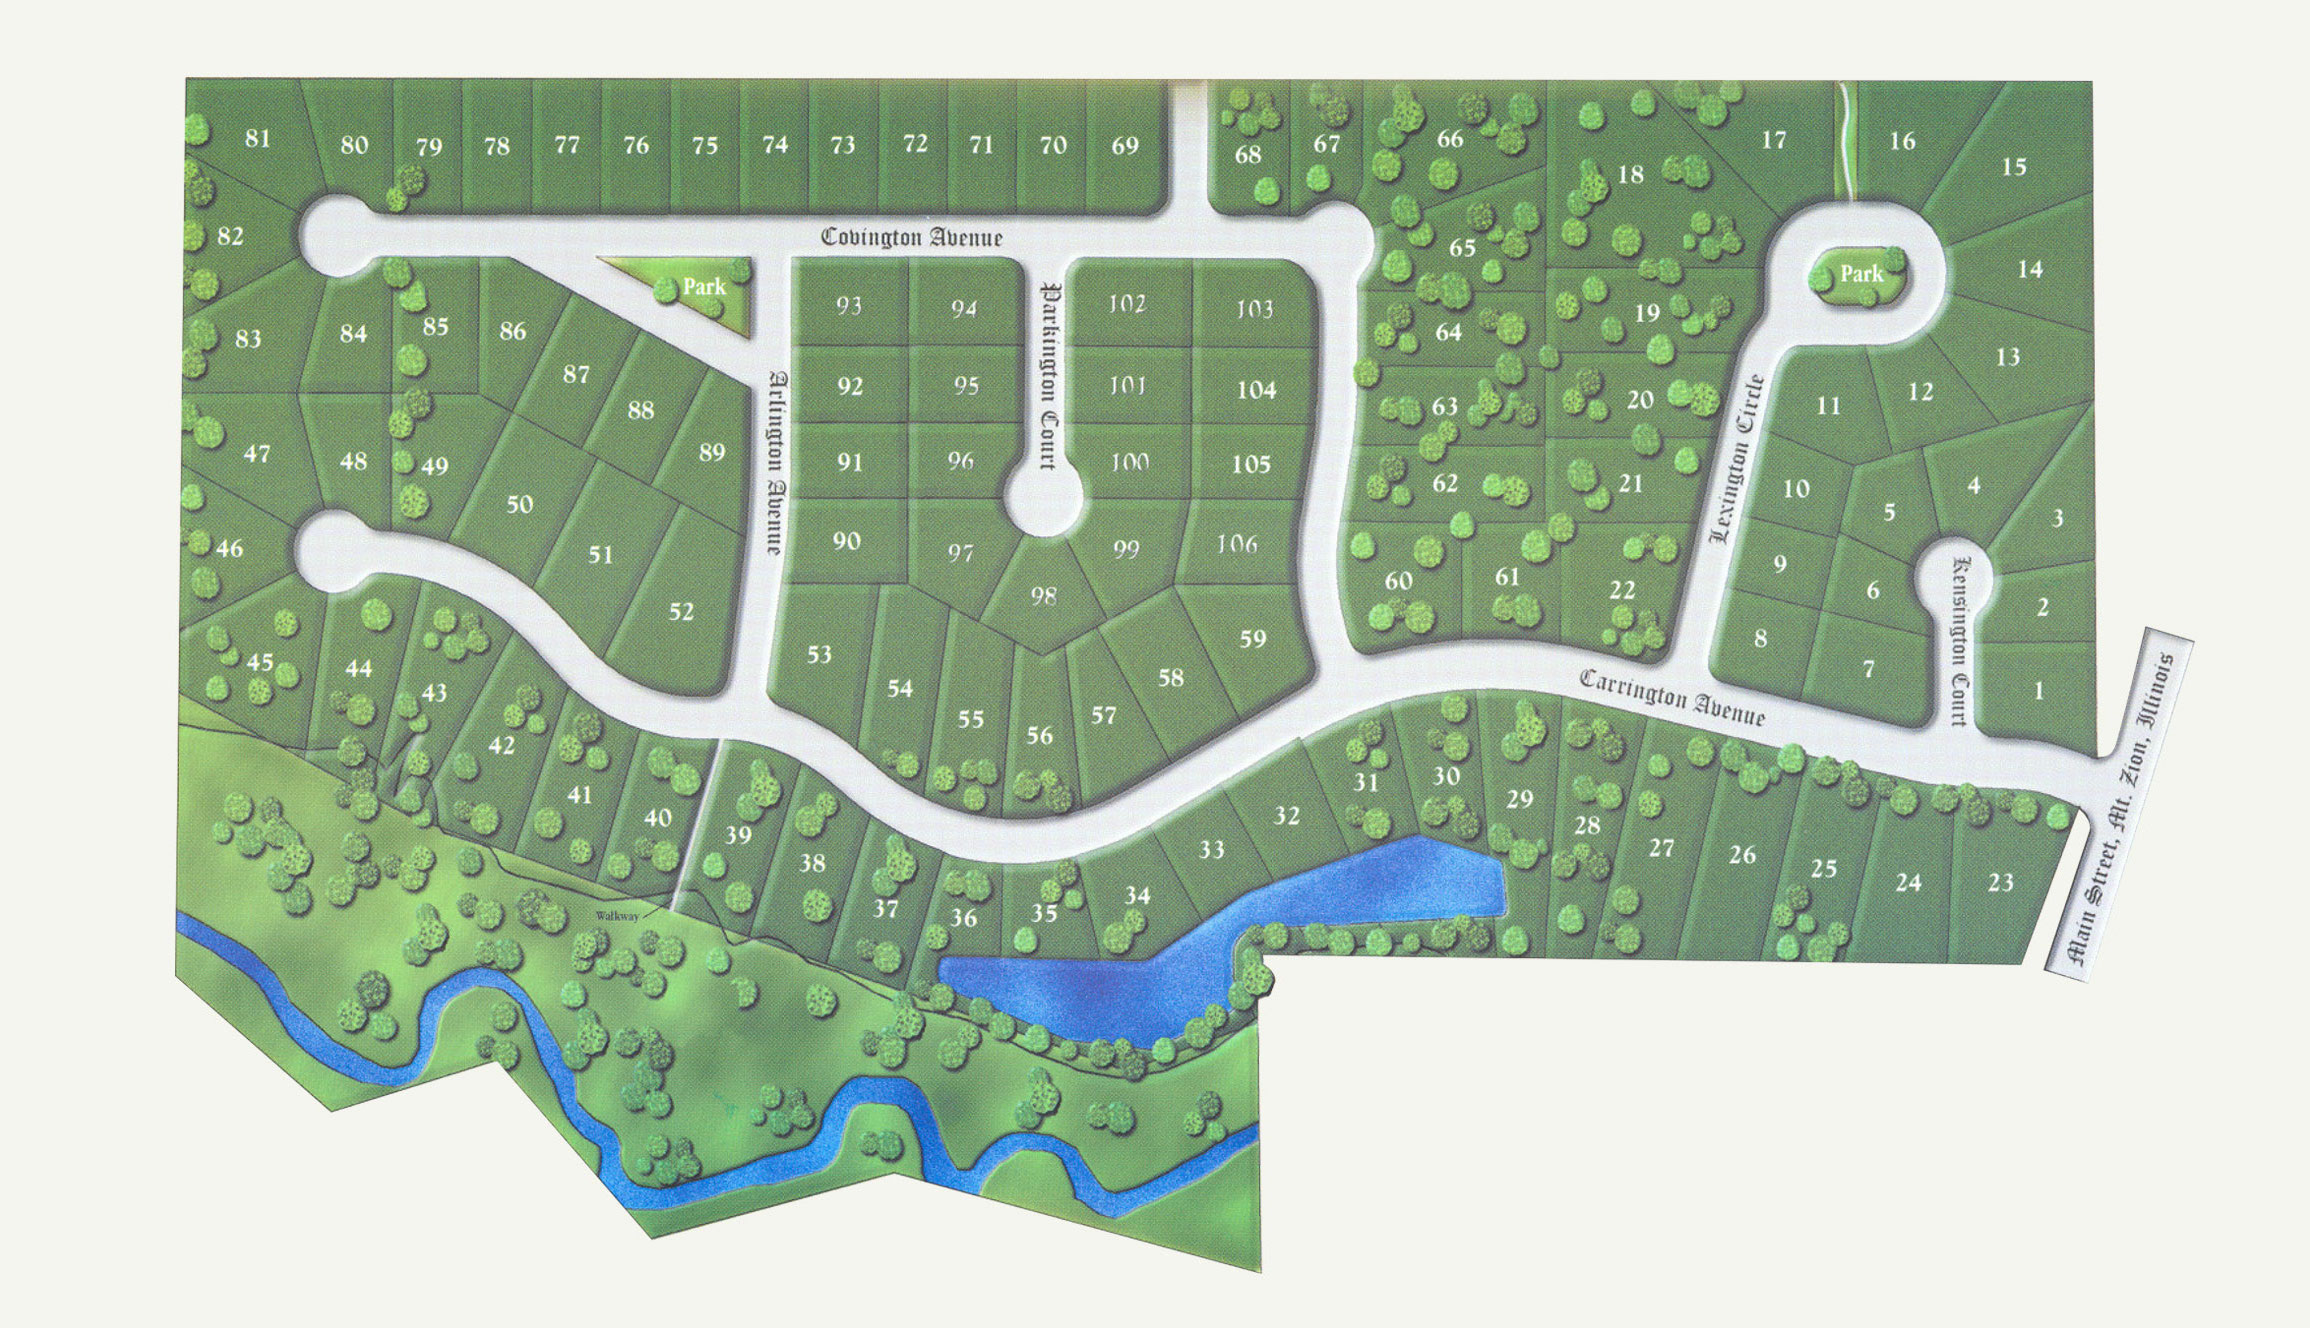 SALewis-Residential-Plat-Carrington.jpg